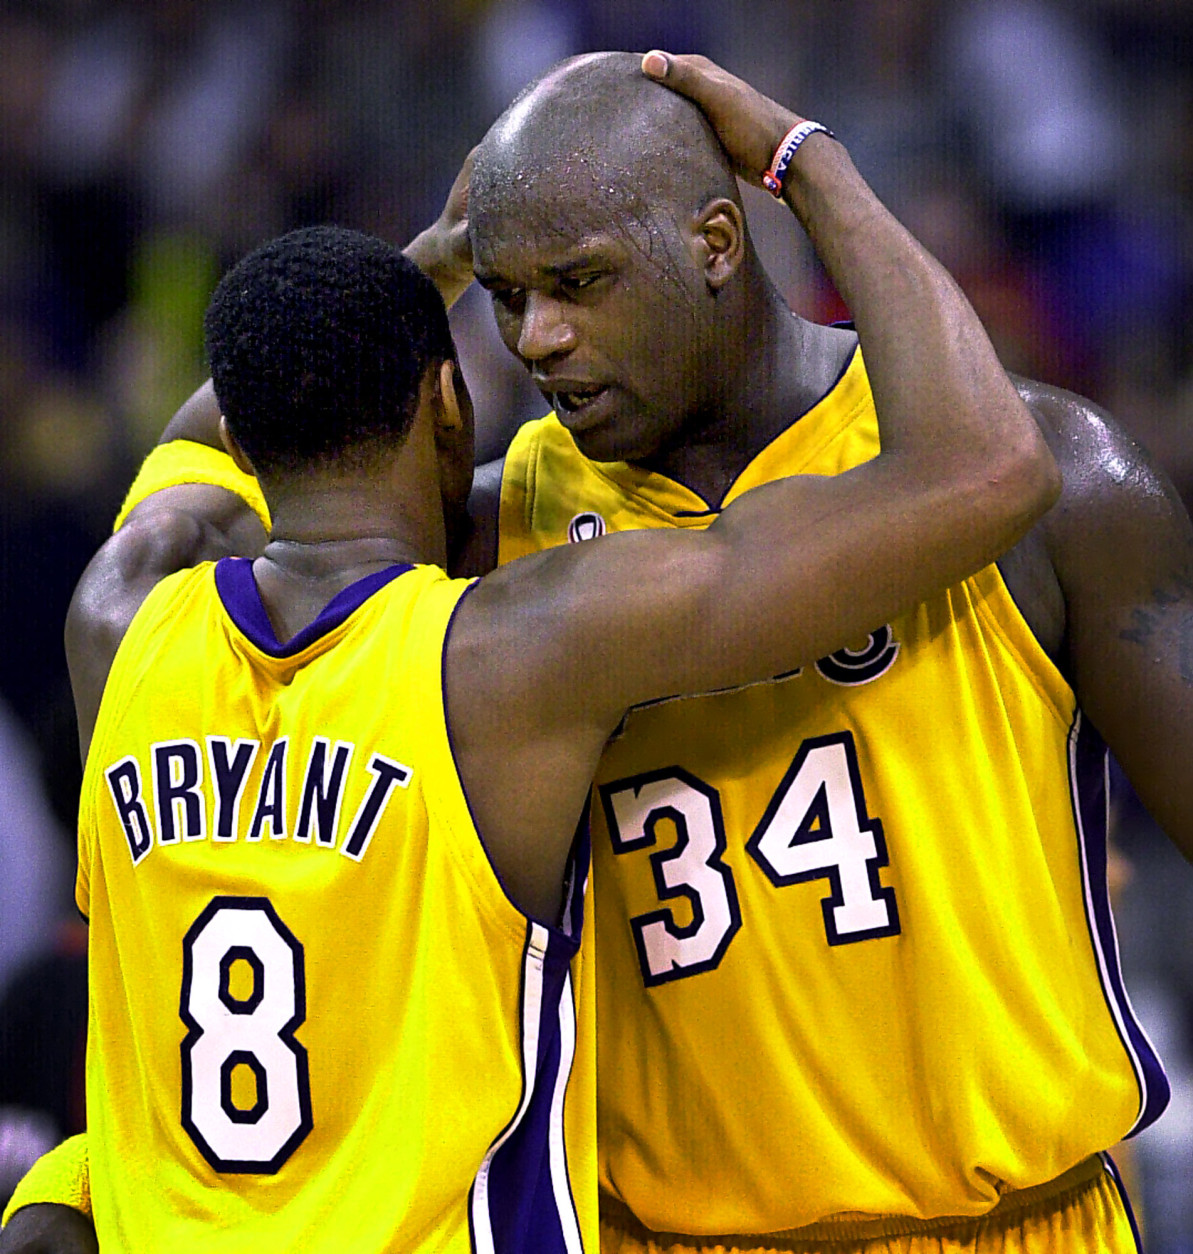 """FILE-This April 21, 2002 file photo shows Los Angeles Lakers's Kobe Bryant, left, and Shaquille O'Neal embracing in the closing minutes in Game 1 of their best-of-five first-round Western Conference playoff series against the Portland Trail Blazers in Los Angeles.  O'Neal says on Twitter  Wednesday June 1, 2011,that he's """"about to retire."""" O'Neal sent a Tweet shortly before 2:45 p.m. saying, """"im retiring."""" It included a link to a 16-second video in which he says, """"We did it; 19 years, baby. Thank you very much. That's why I'm telling you first: I'm about to retire. Love you. Talk to you soon."""" (AP Photo/Mark J. Terrill,File)"""